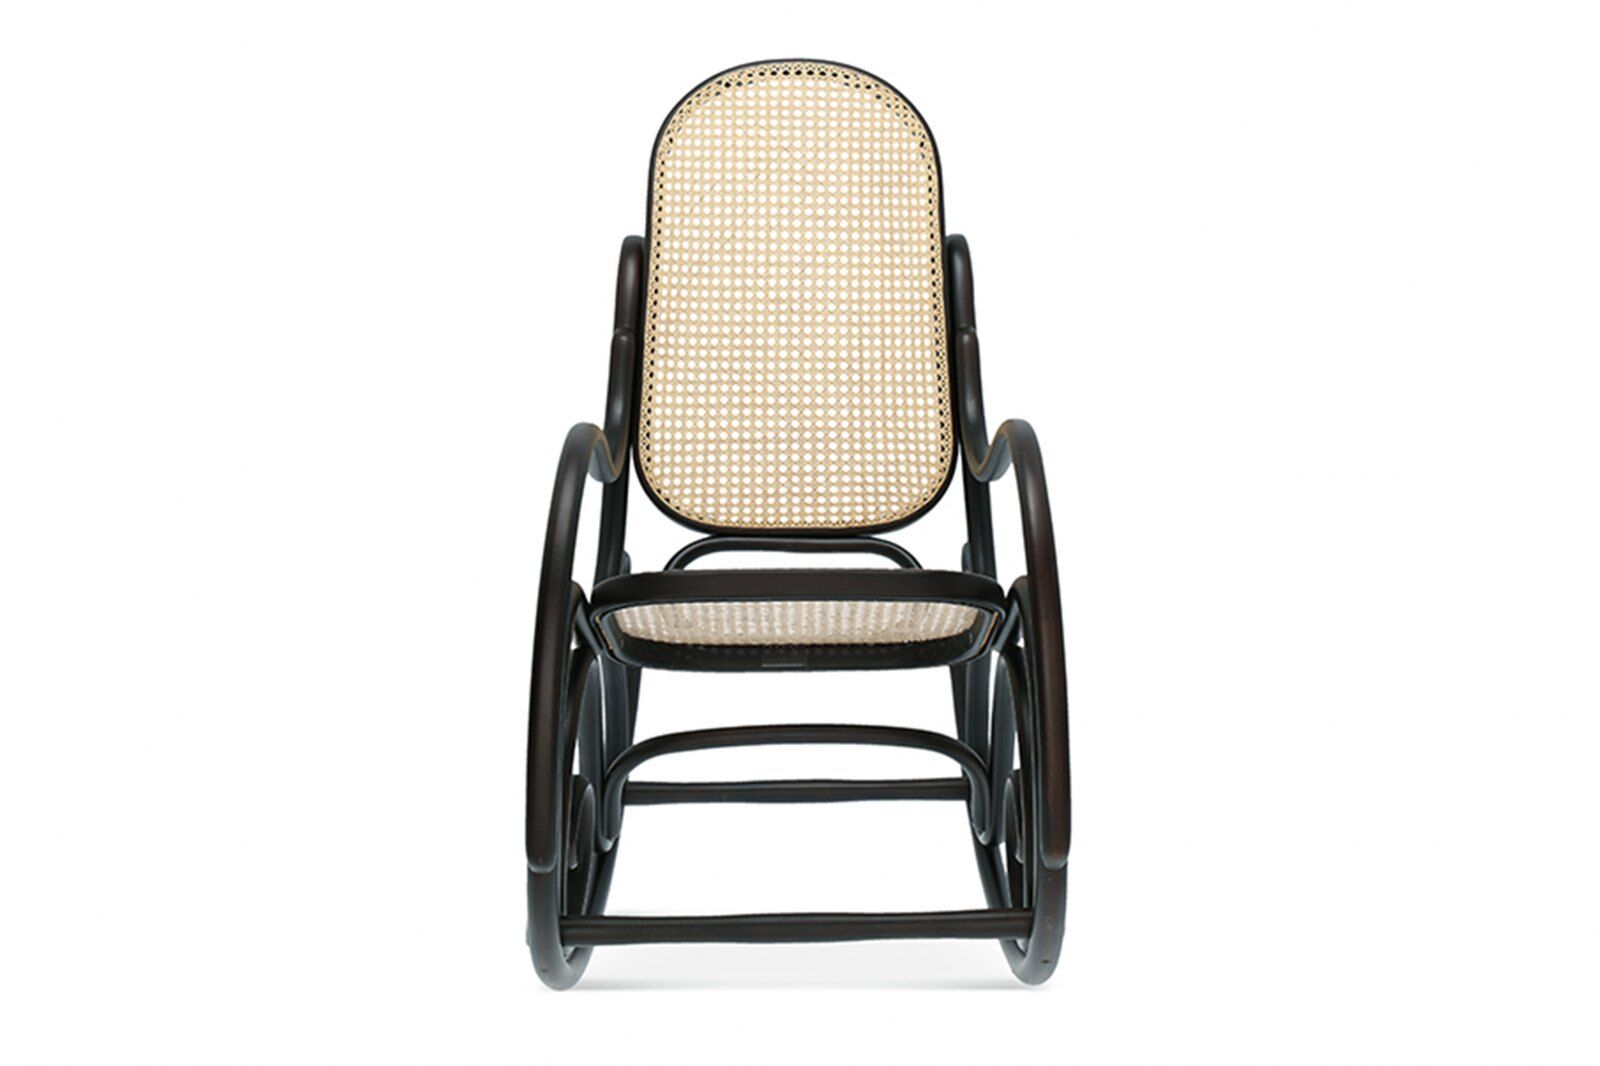 Robin Cane Bentwood Rocking Chair / 1